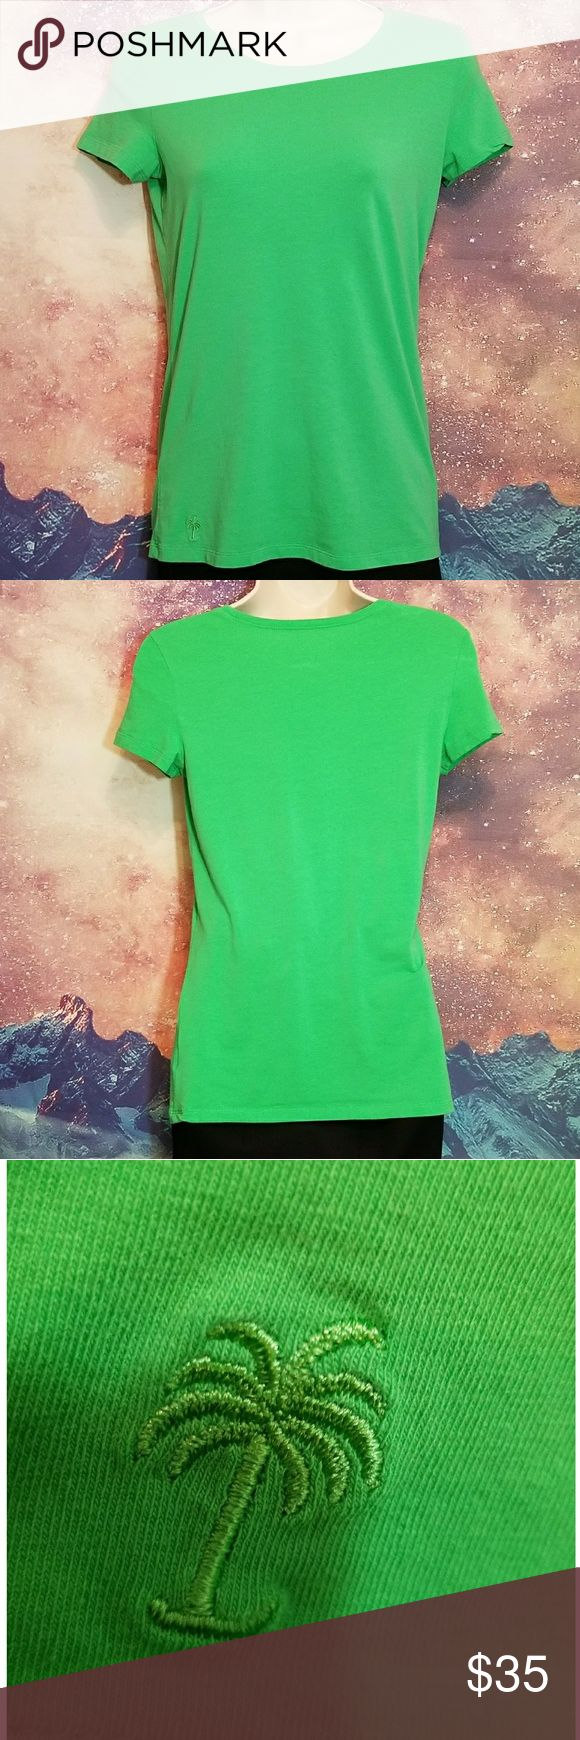 Lilly Pulitzer Green T-shirt XXS Lilly Pulitzer Green T-shirt Size XXS 93% Pima Cotton 7% Spandex Lilly Pulitzer Tops Tees - Short Sleeve